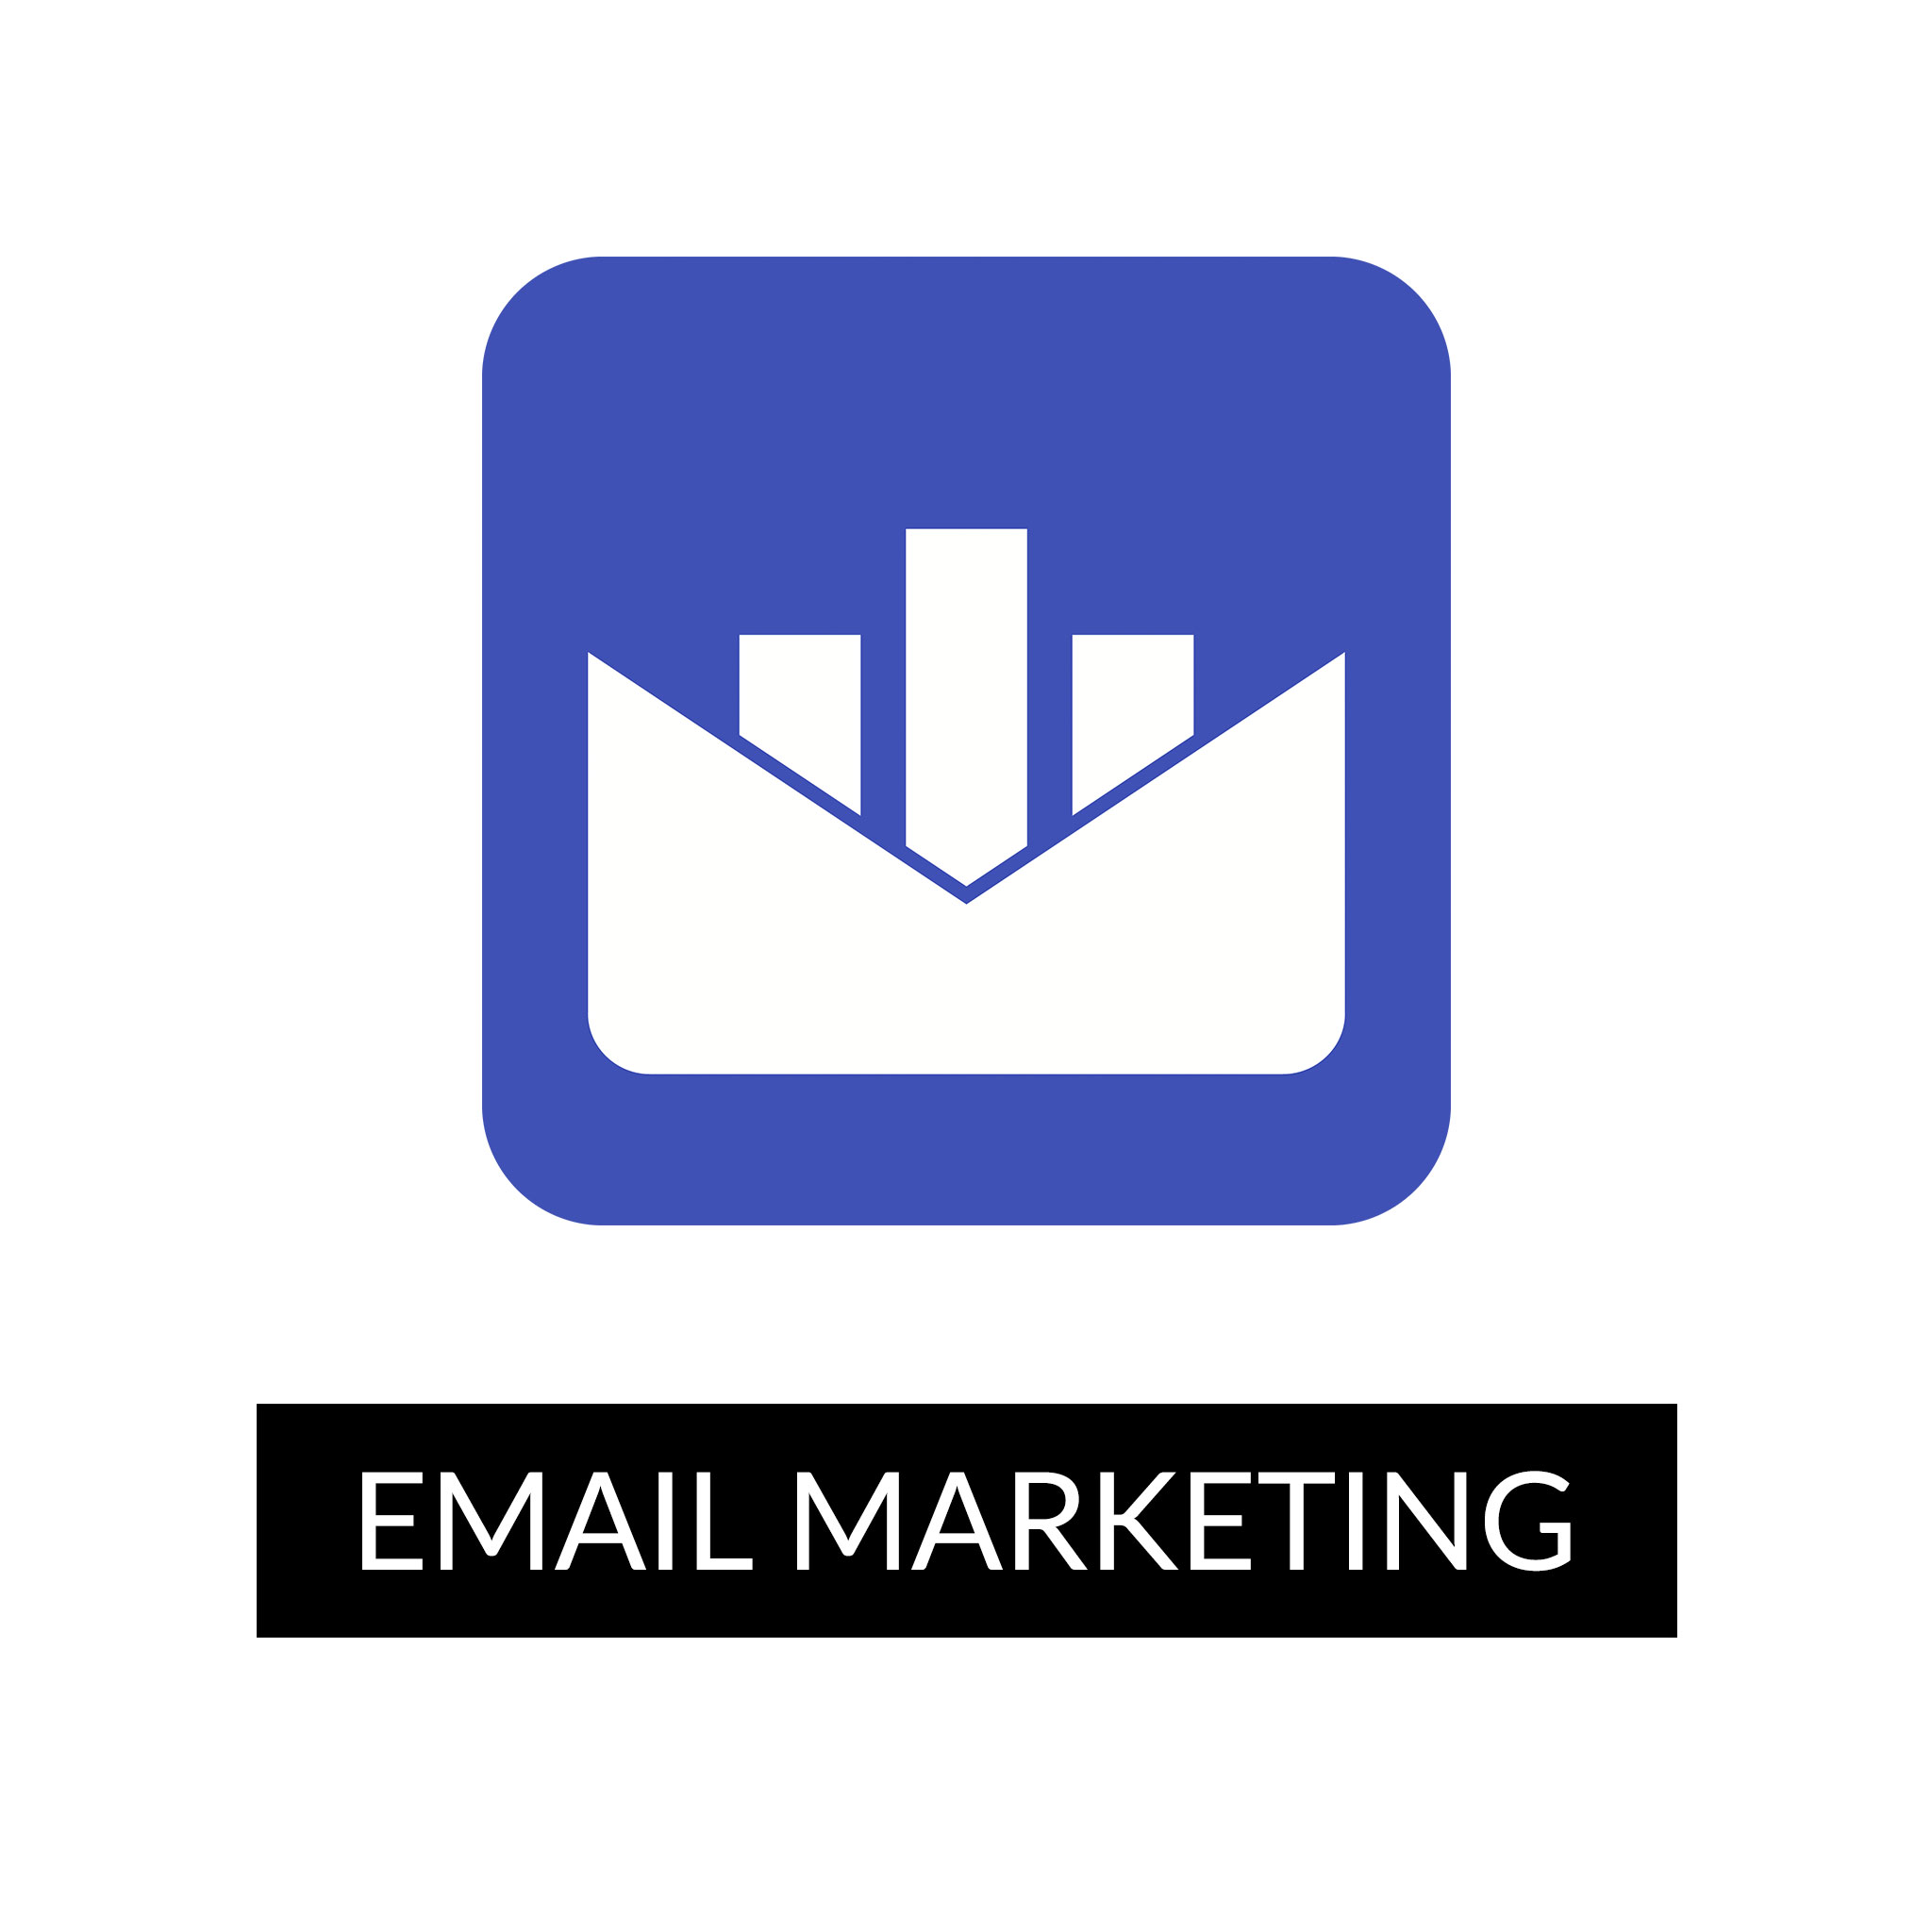 Highest Quality Email Marketing provided by Upper Hand Digital: The Award-Winning Surrey-based Digital Marketing Company